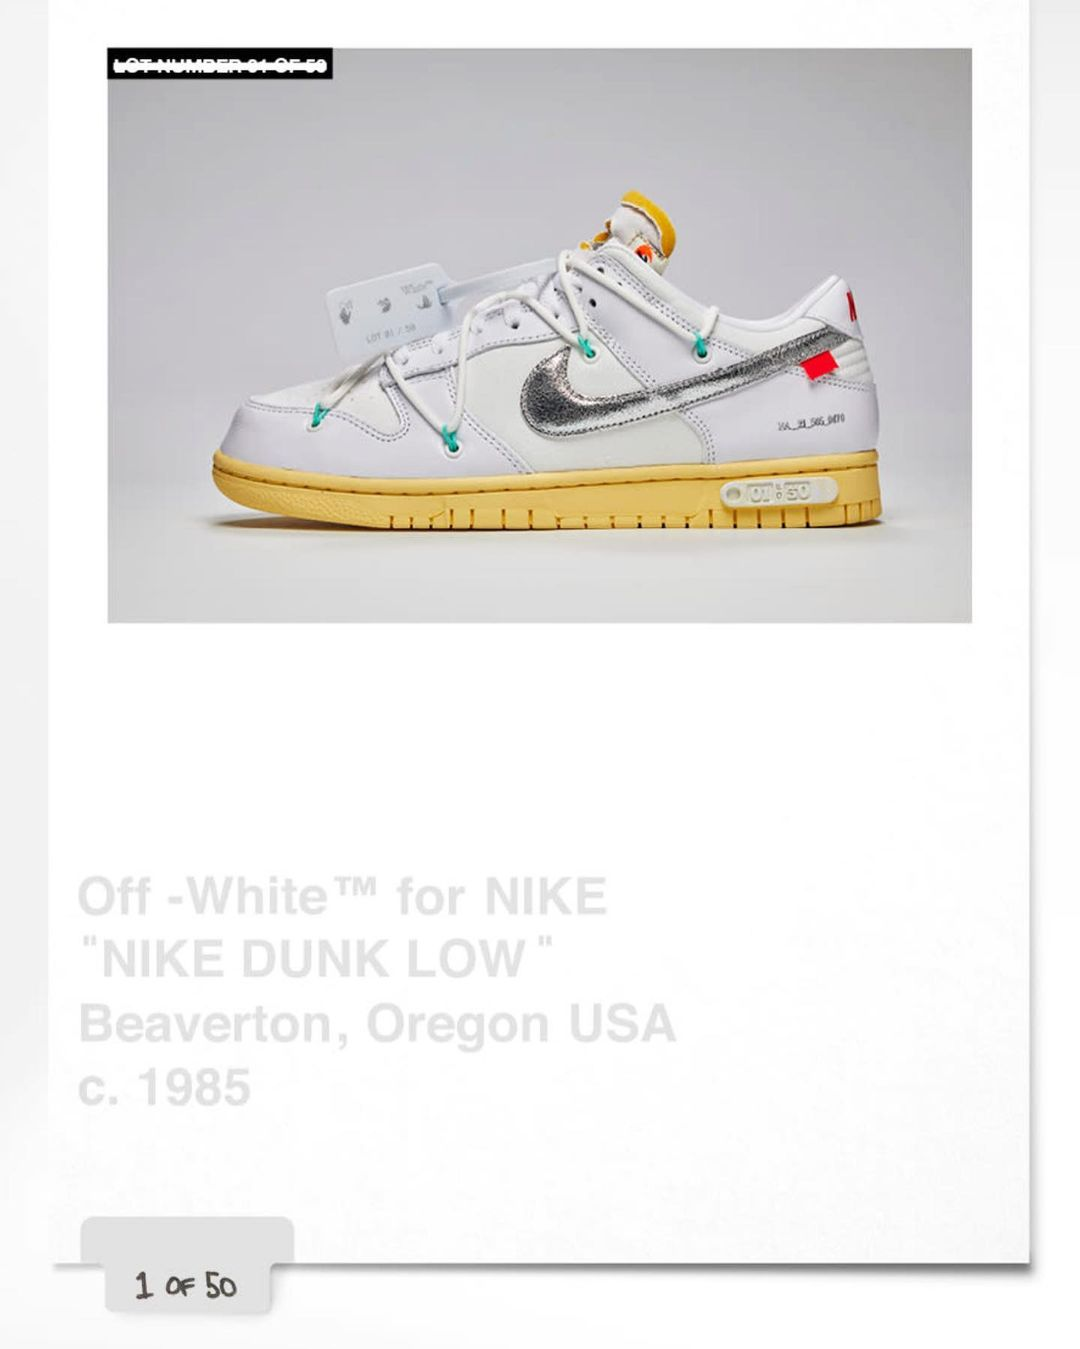 off-white-nike-dunk-low-the-50-color-release-2021-fall